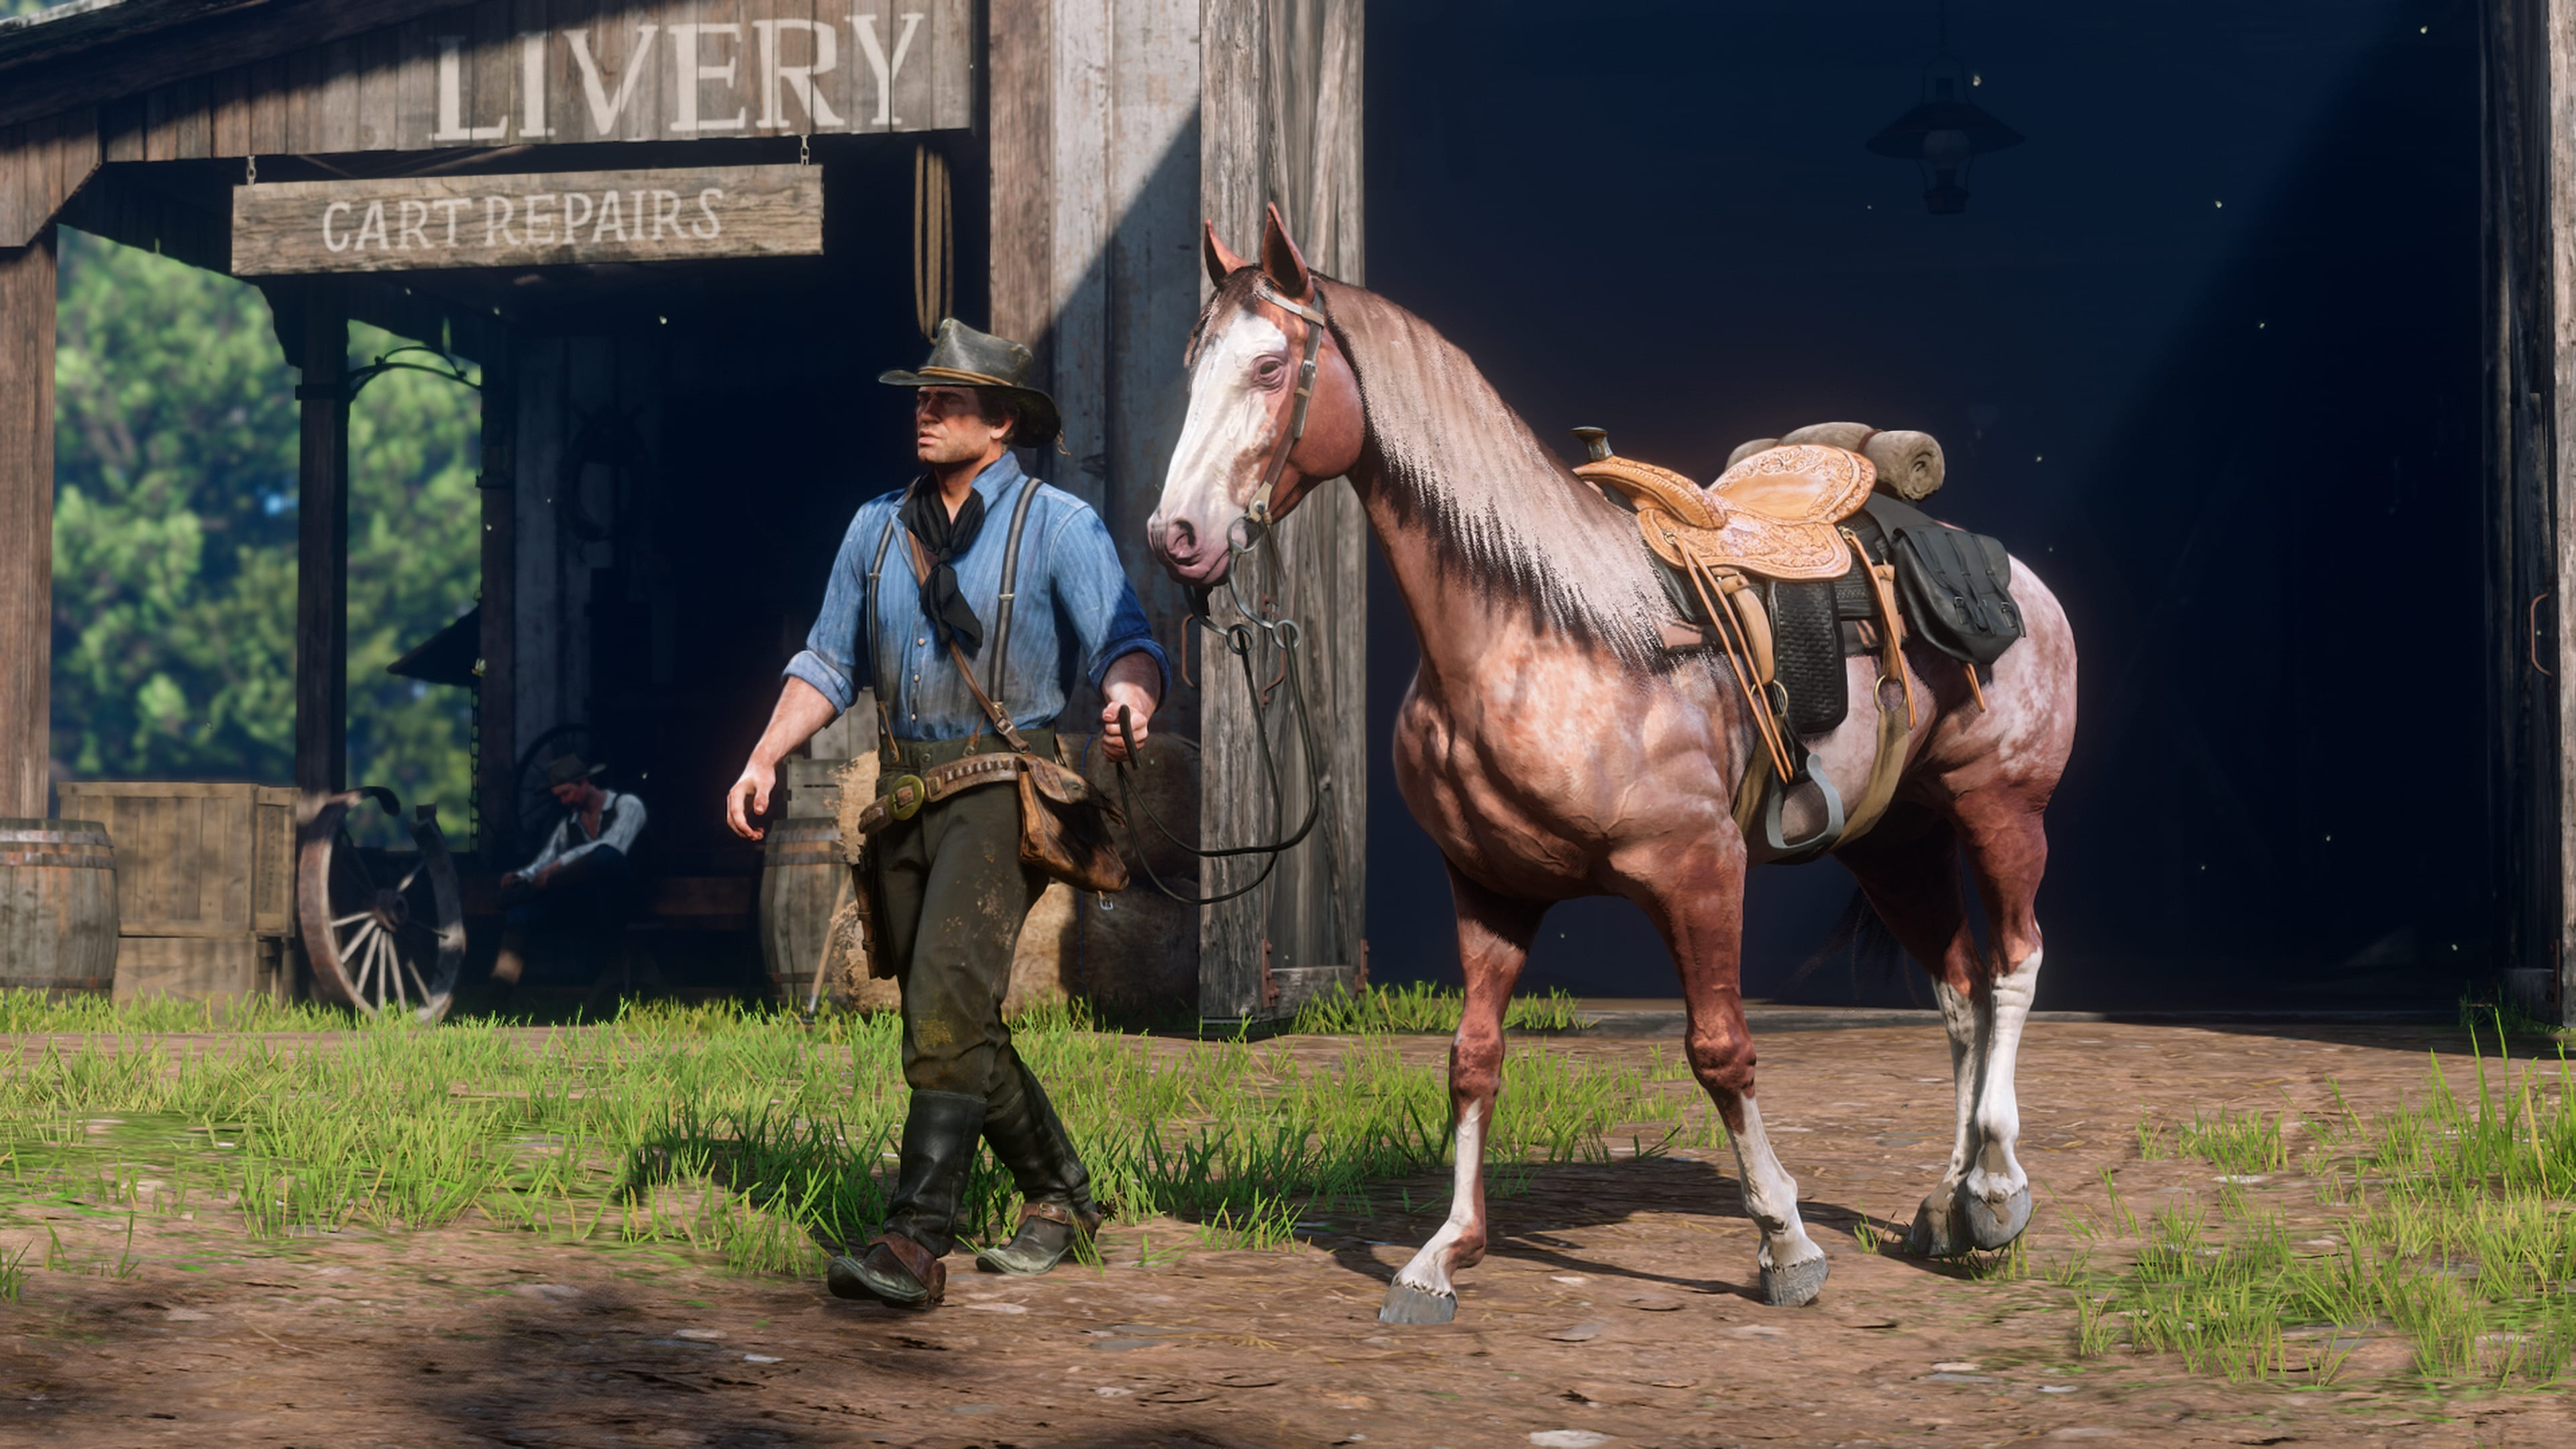 When collection sparks joy in Red Dead Redemption 2